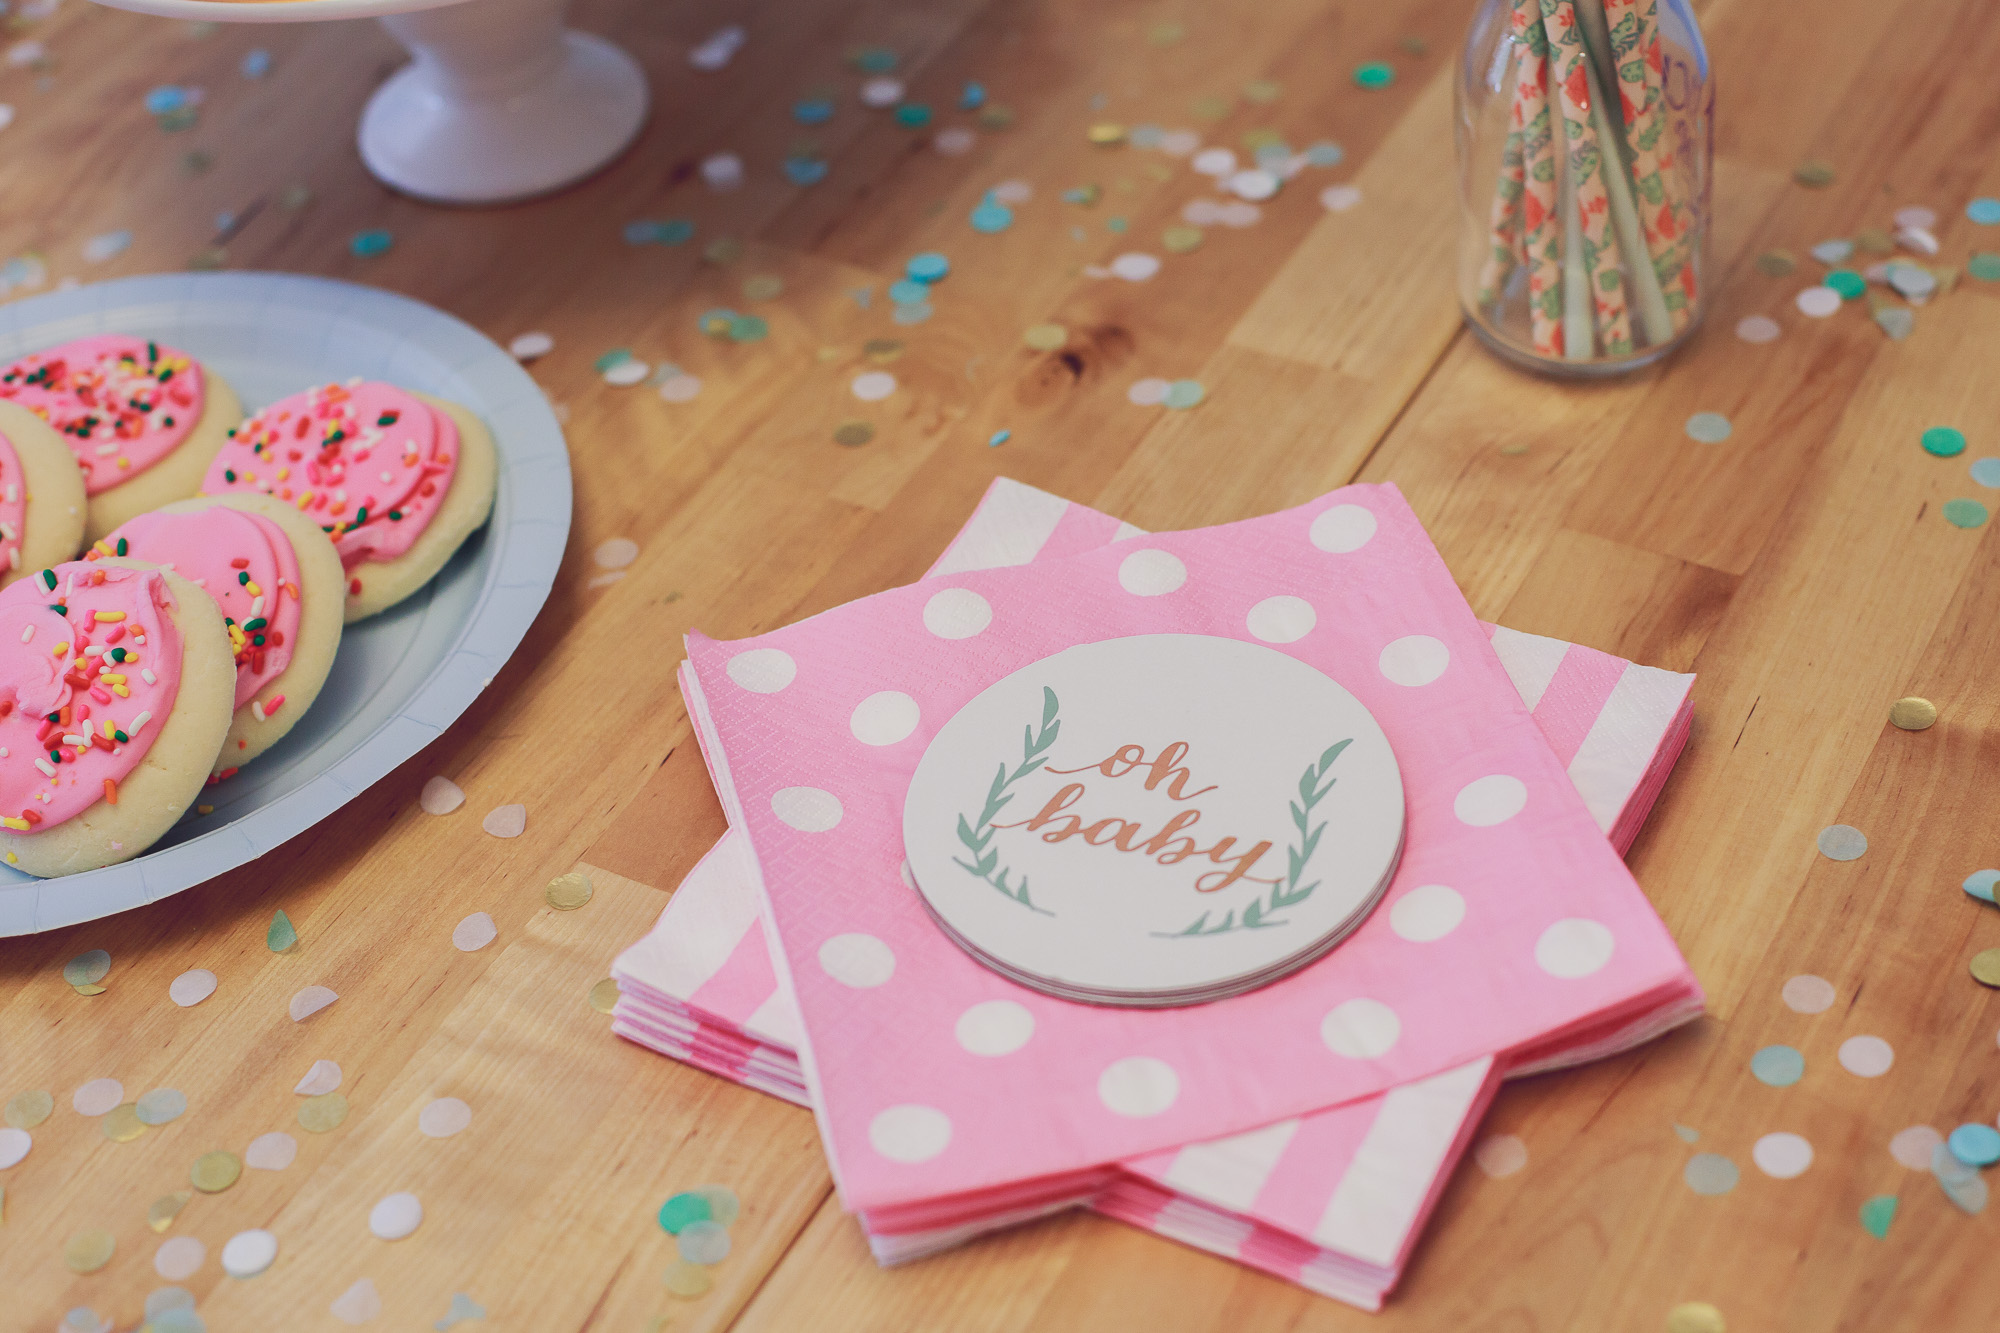 Cupcakes from gender reveal party on Linn Style by fashion, lifestyle and beauty blogger / vlogger Jessica Linn